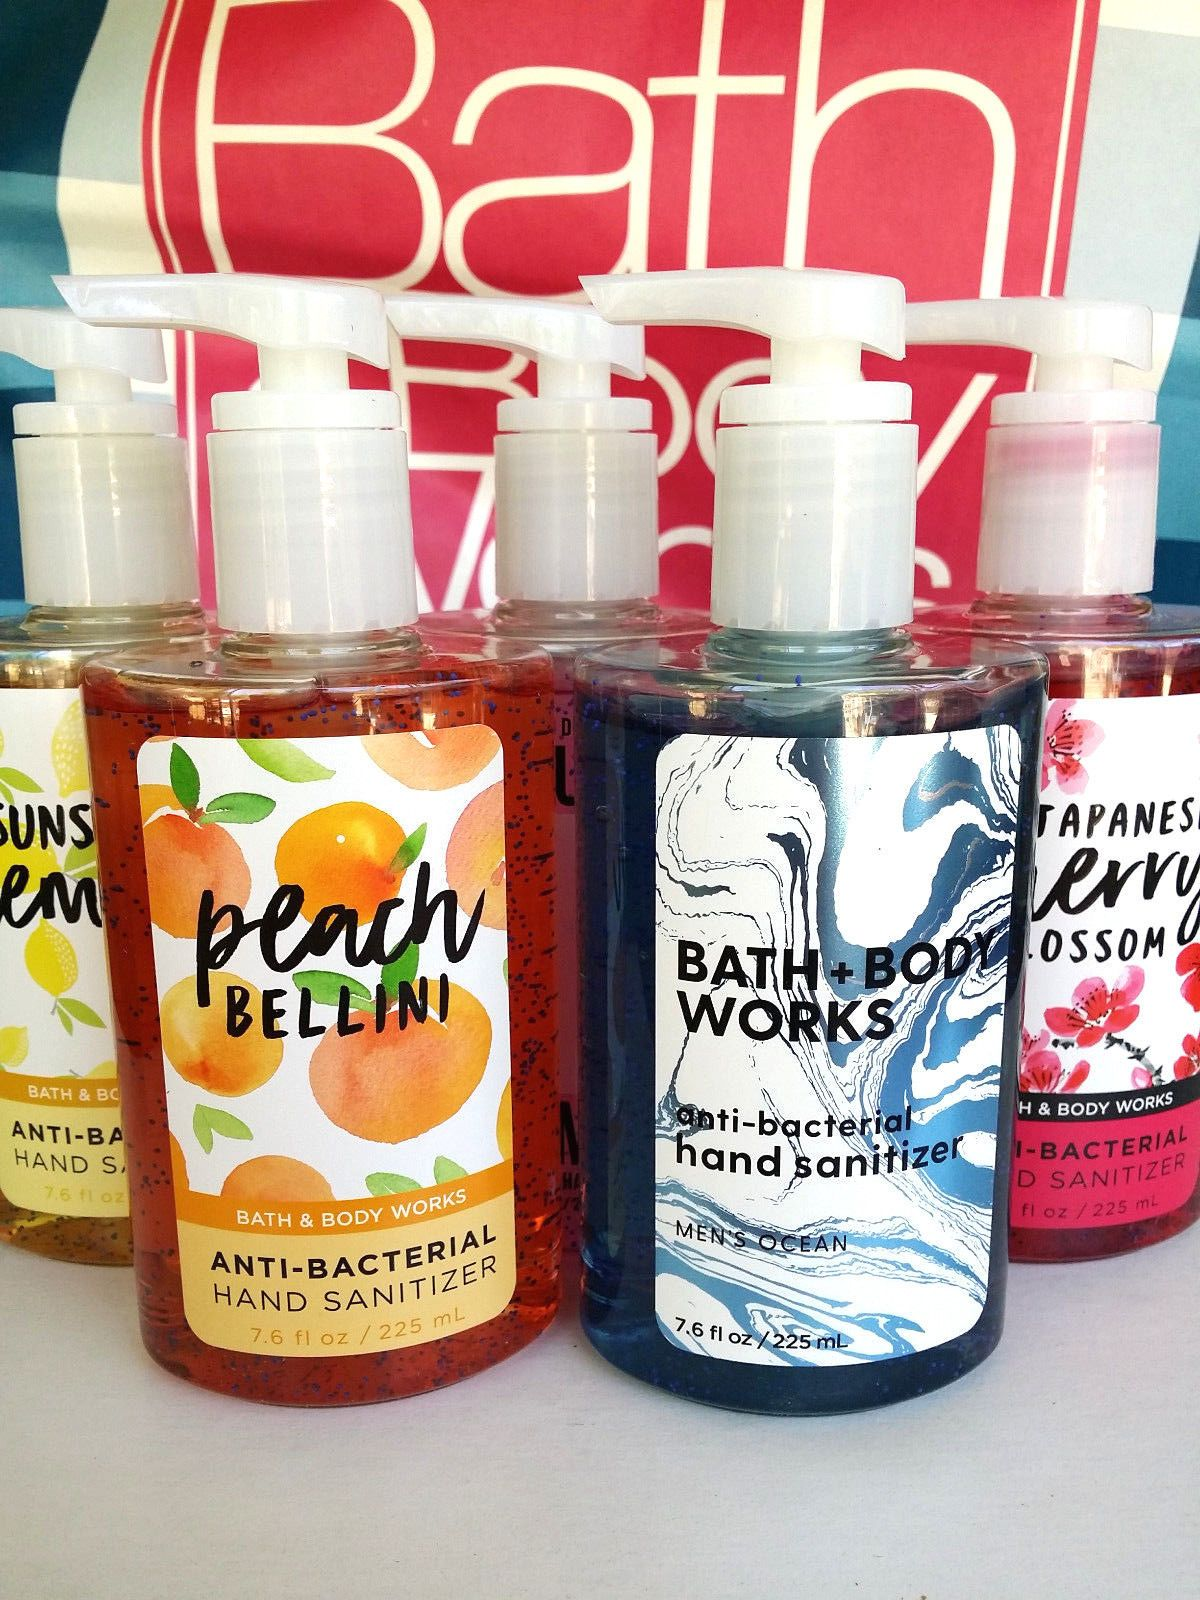 Bath And Body Works Anti Bacterial Large Pump Hand Sanitizer 7 6